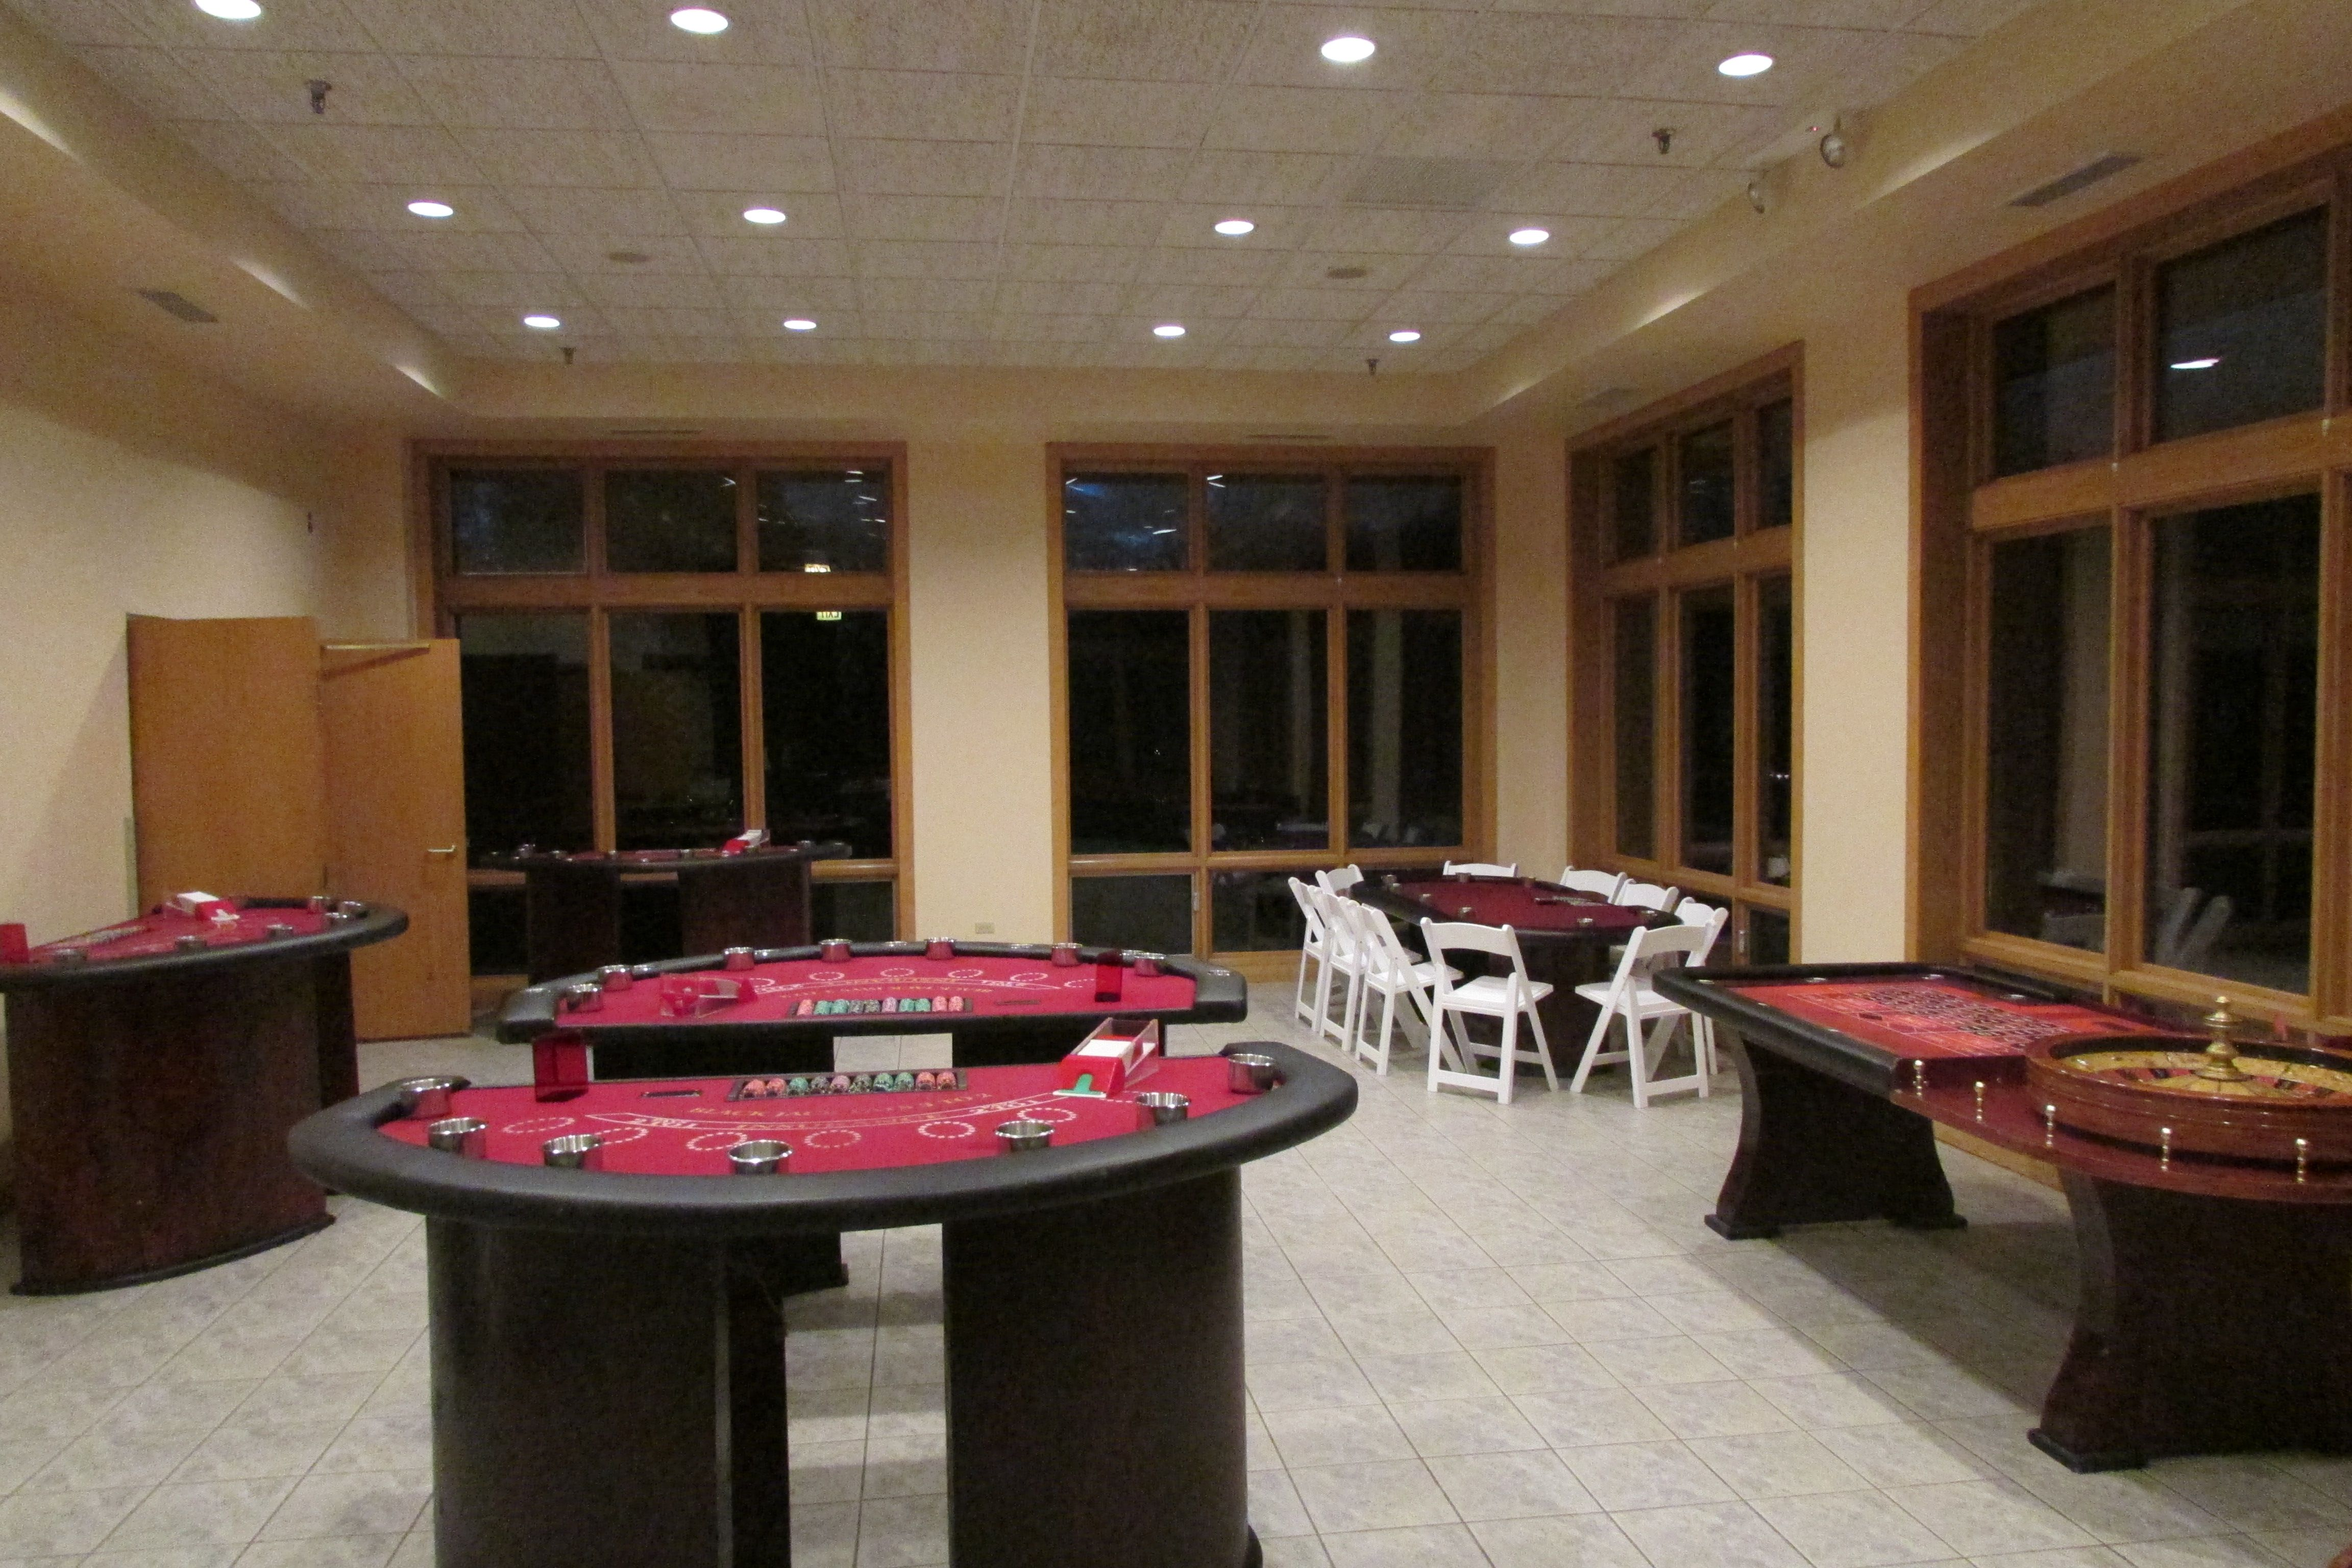 Casino themed bridal shower. Roulette, craps, poker and other casino games were brought in and set up in the back room to make for an event guests really enjoyed.